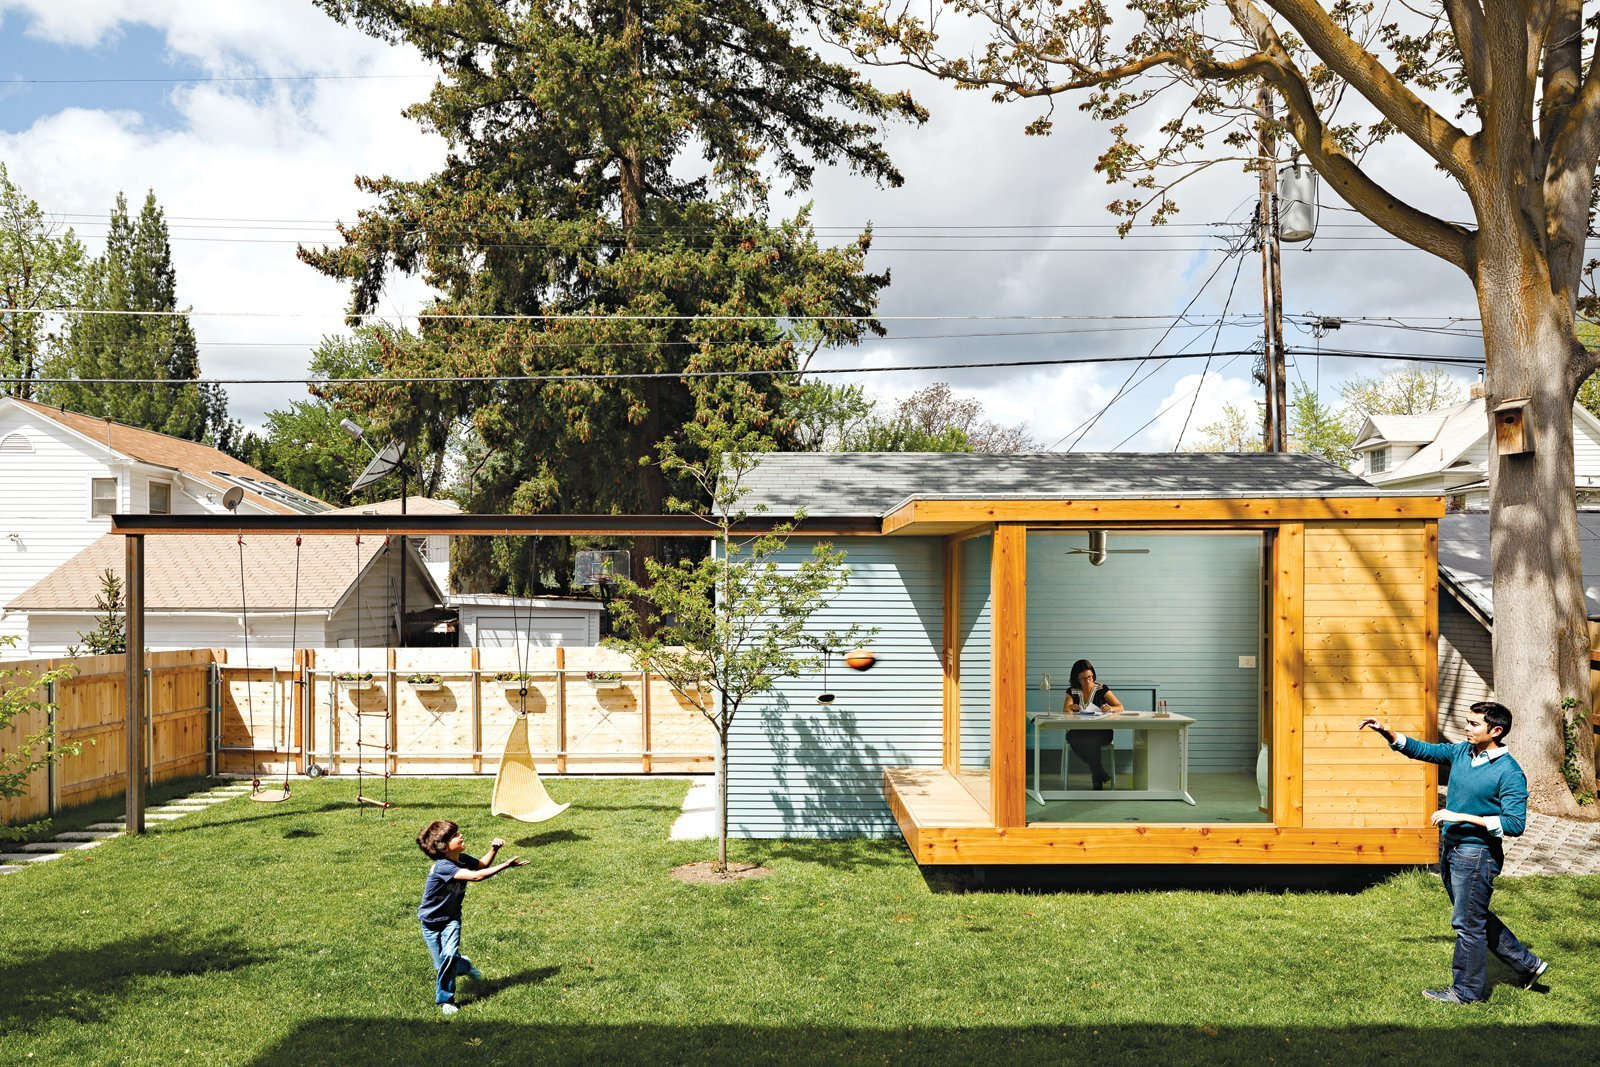 Shed & Studio, Den Room Type, Family Room Room Type, and Living Room Room Type Portland, Oregon–based architects Heidi Beebe and Doug Skidmore designed a glass-walled studio to create a focal point in backyard of this Boise, Idaho house, and as a home office for one of the owners.  Photo 7 of 9 in 8 Tiny Sheds and Studios Used as Home Offices or Creative Retreats